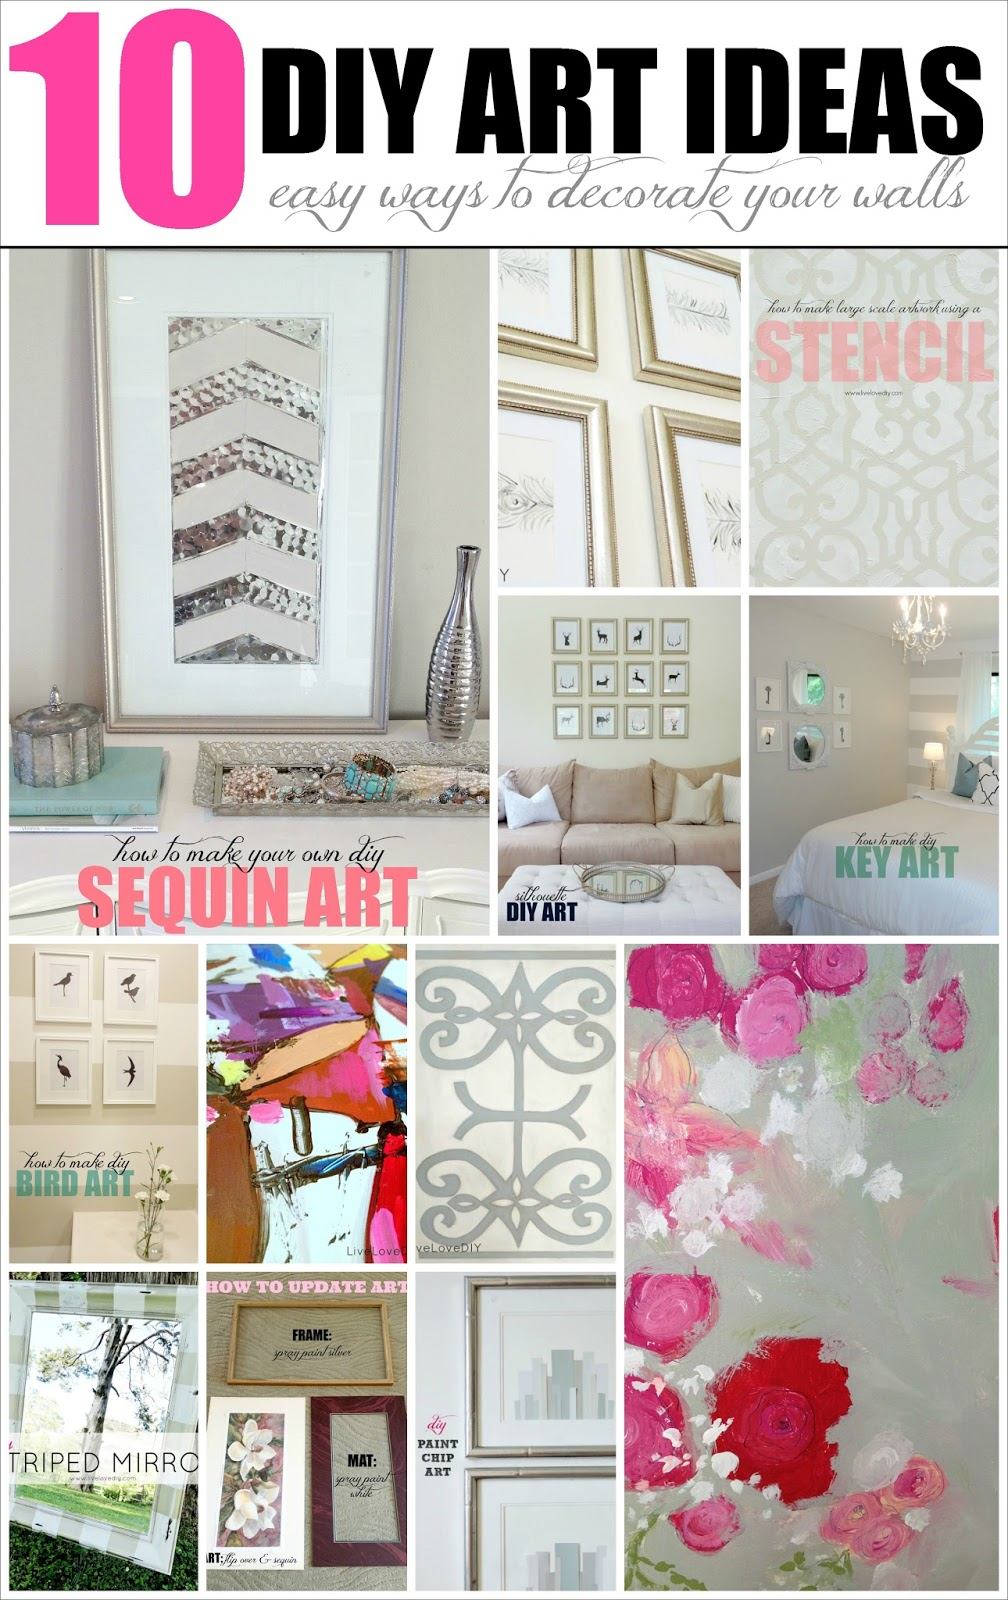 Easy Diy Wall Decor Ideas : Livelovediy diy art ideas easy ways to decorate your